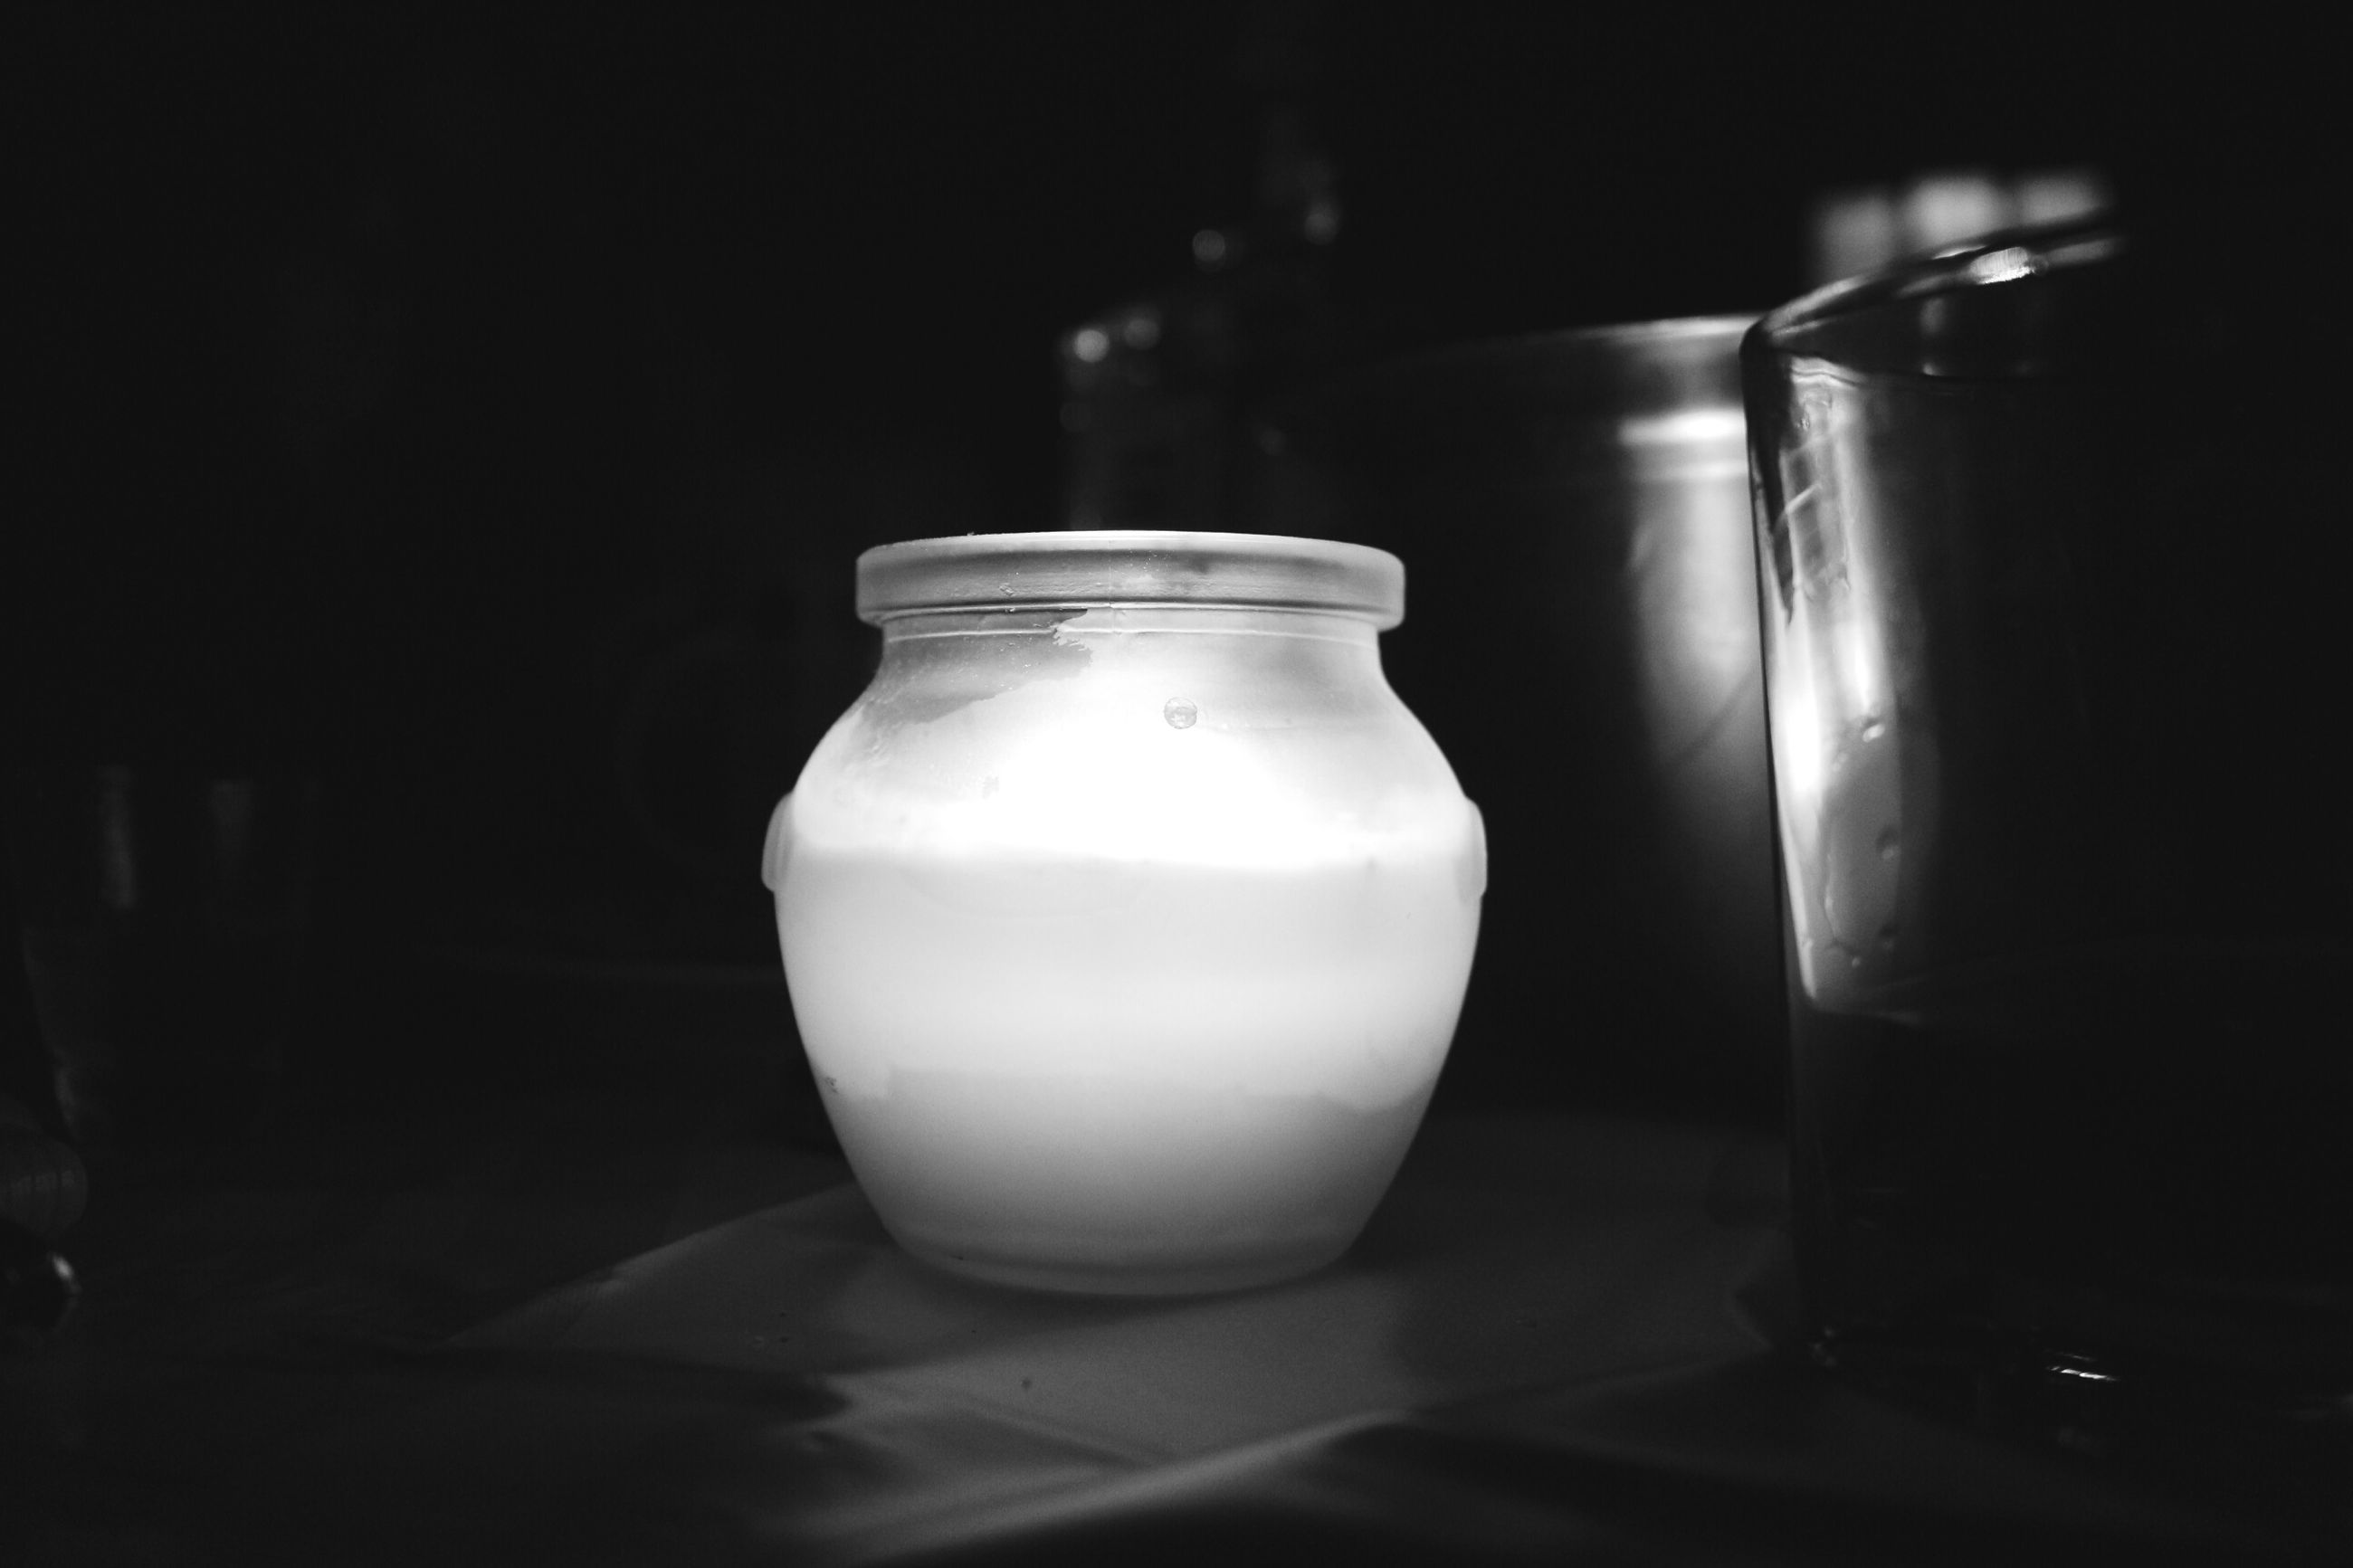 indoors, illuminated, still life, close-up, candle, table, lighting equipment, glass - material, home interior, glowing, lit, focus on foreground, electricity, no people, transparent, flame, jar, bottle, light bulb, light - natural phenomenon